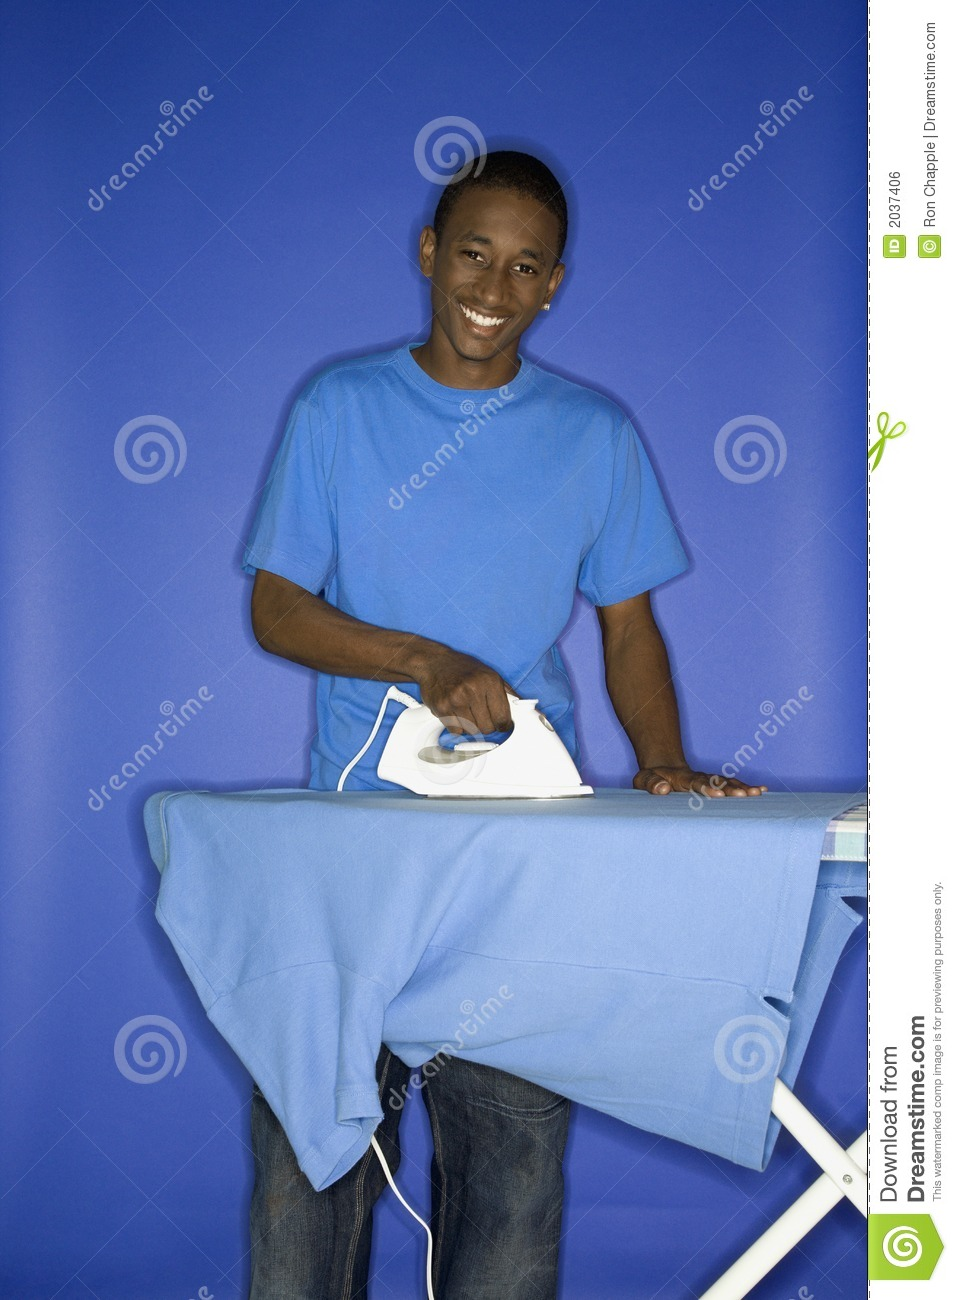 africanamerican teen boy ironing royalty free stock